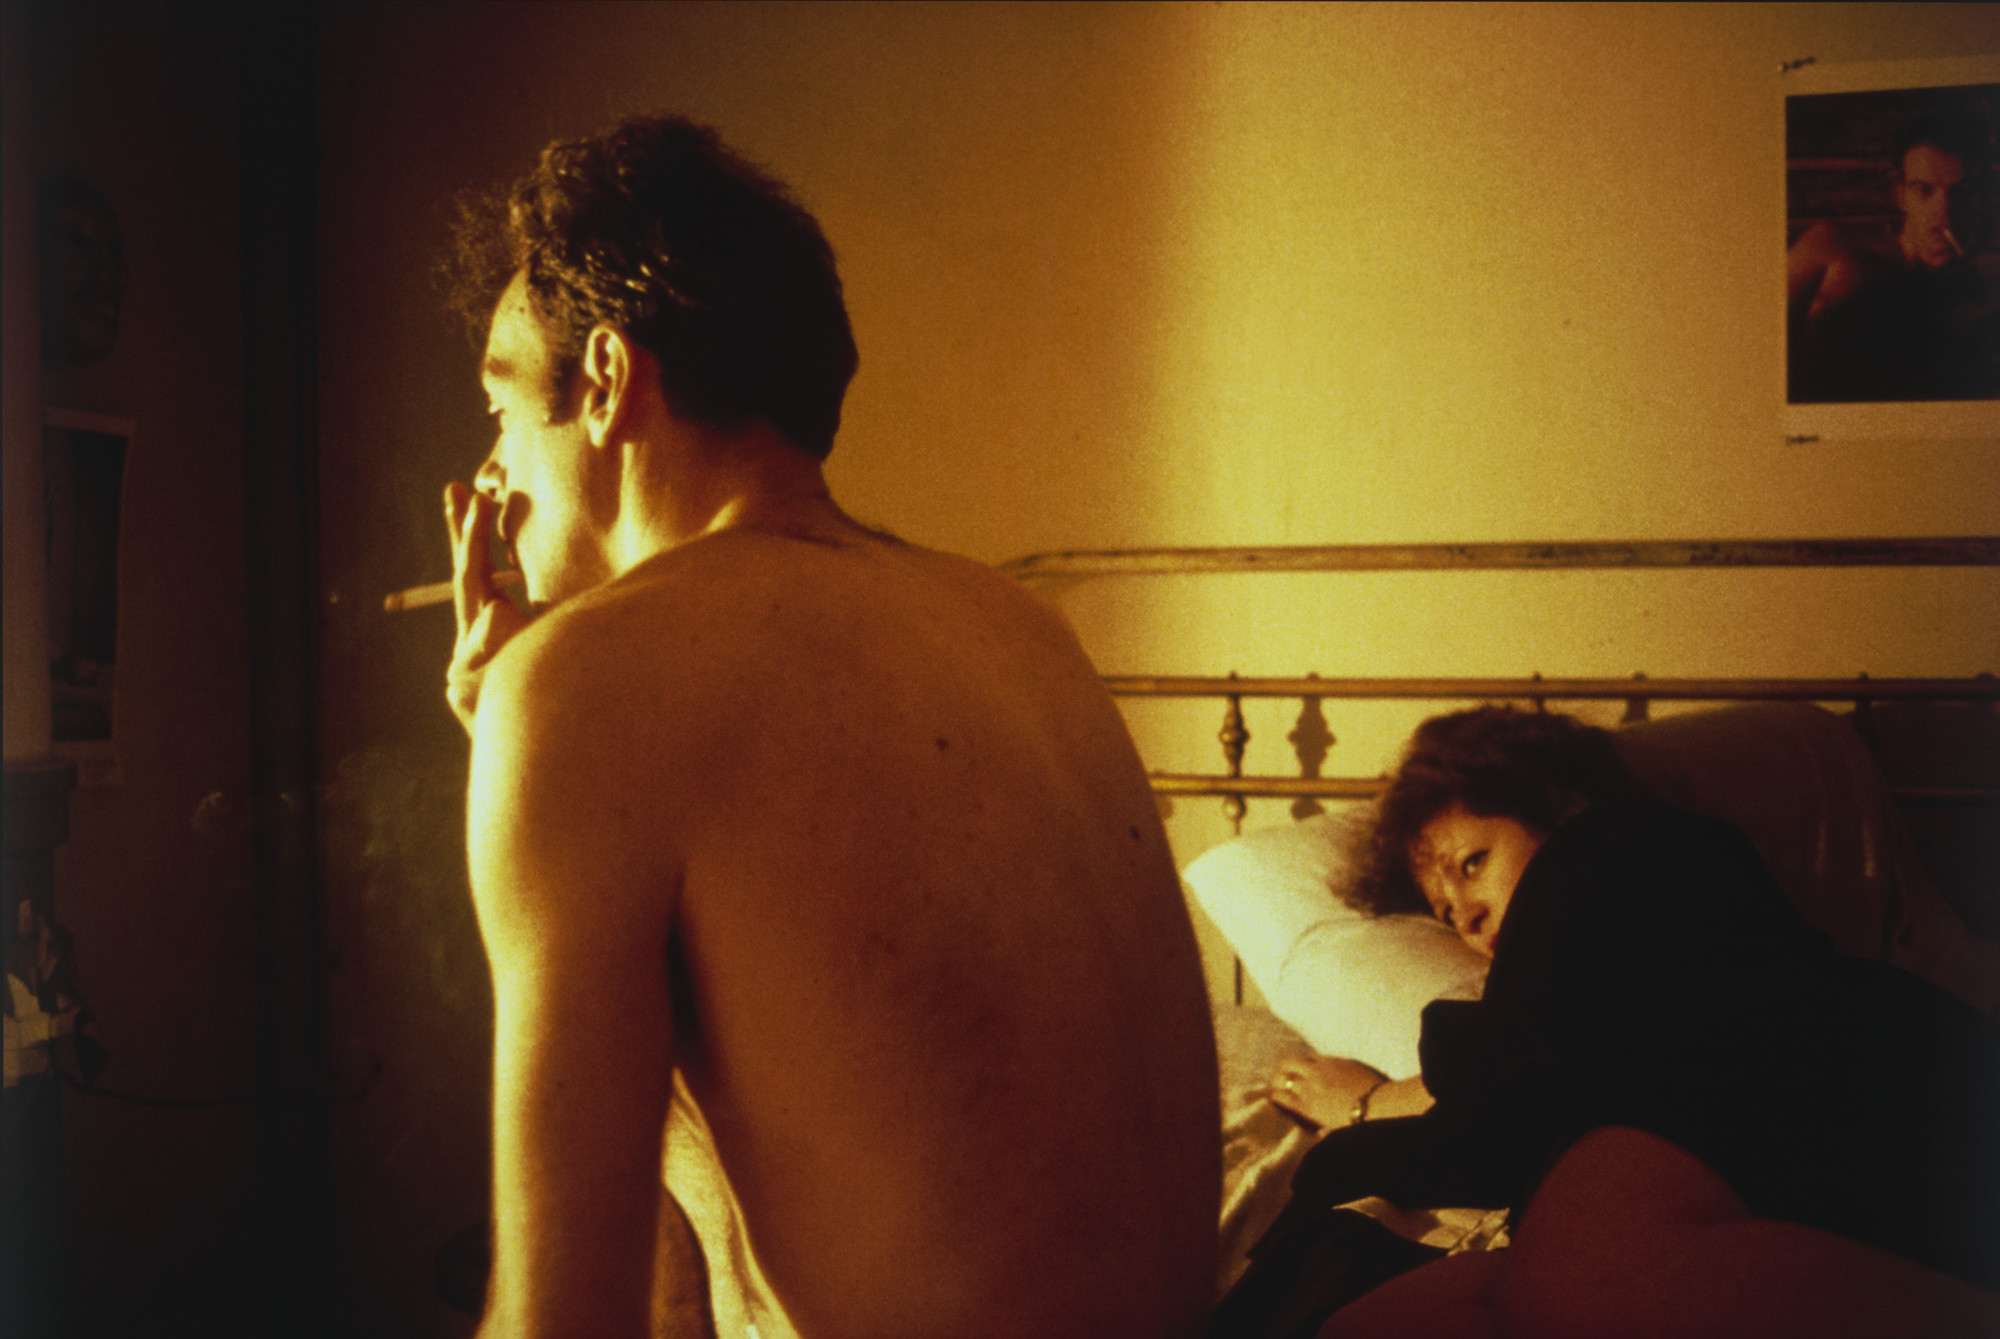 Nan Goldin. Nan and Brian in Bed, New York City. 1983